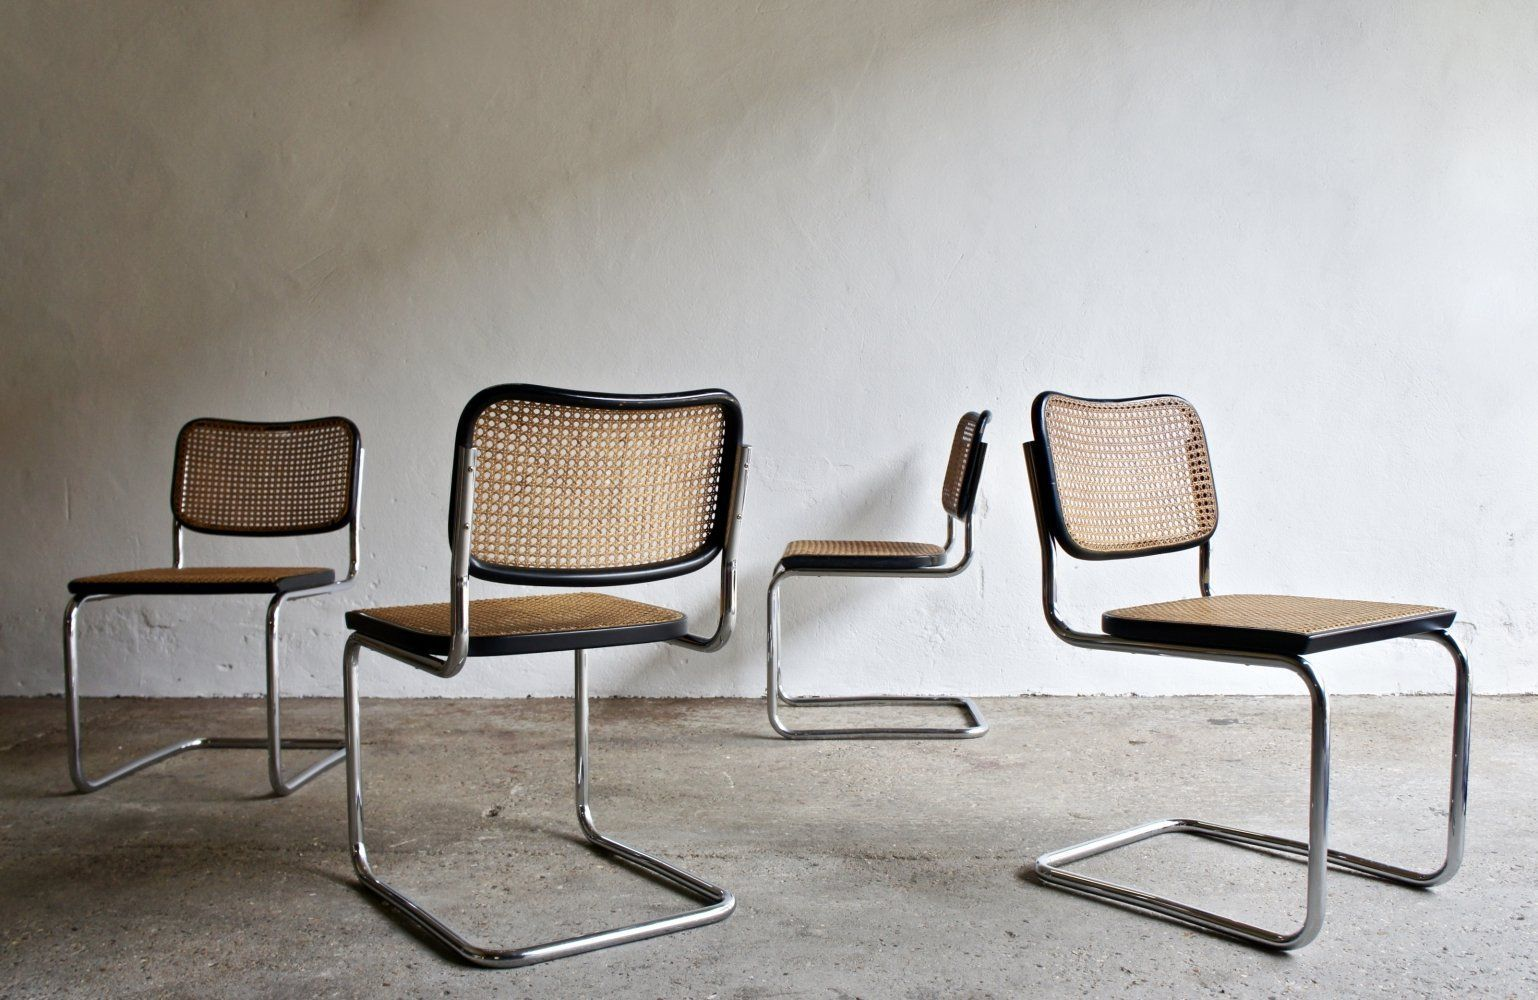 For Sale Original 1950 S Cesca Chairs By Marcel Breuer For Gavina Cesca Chair Chair Design Wassily Chair